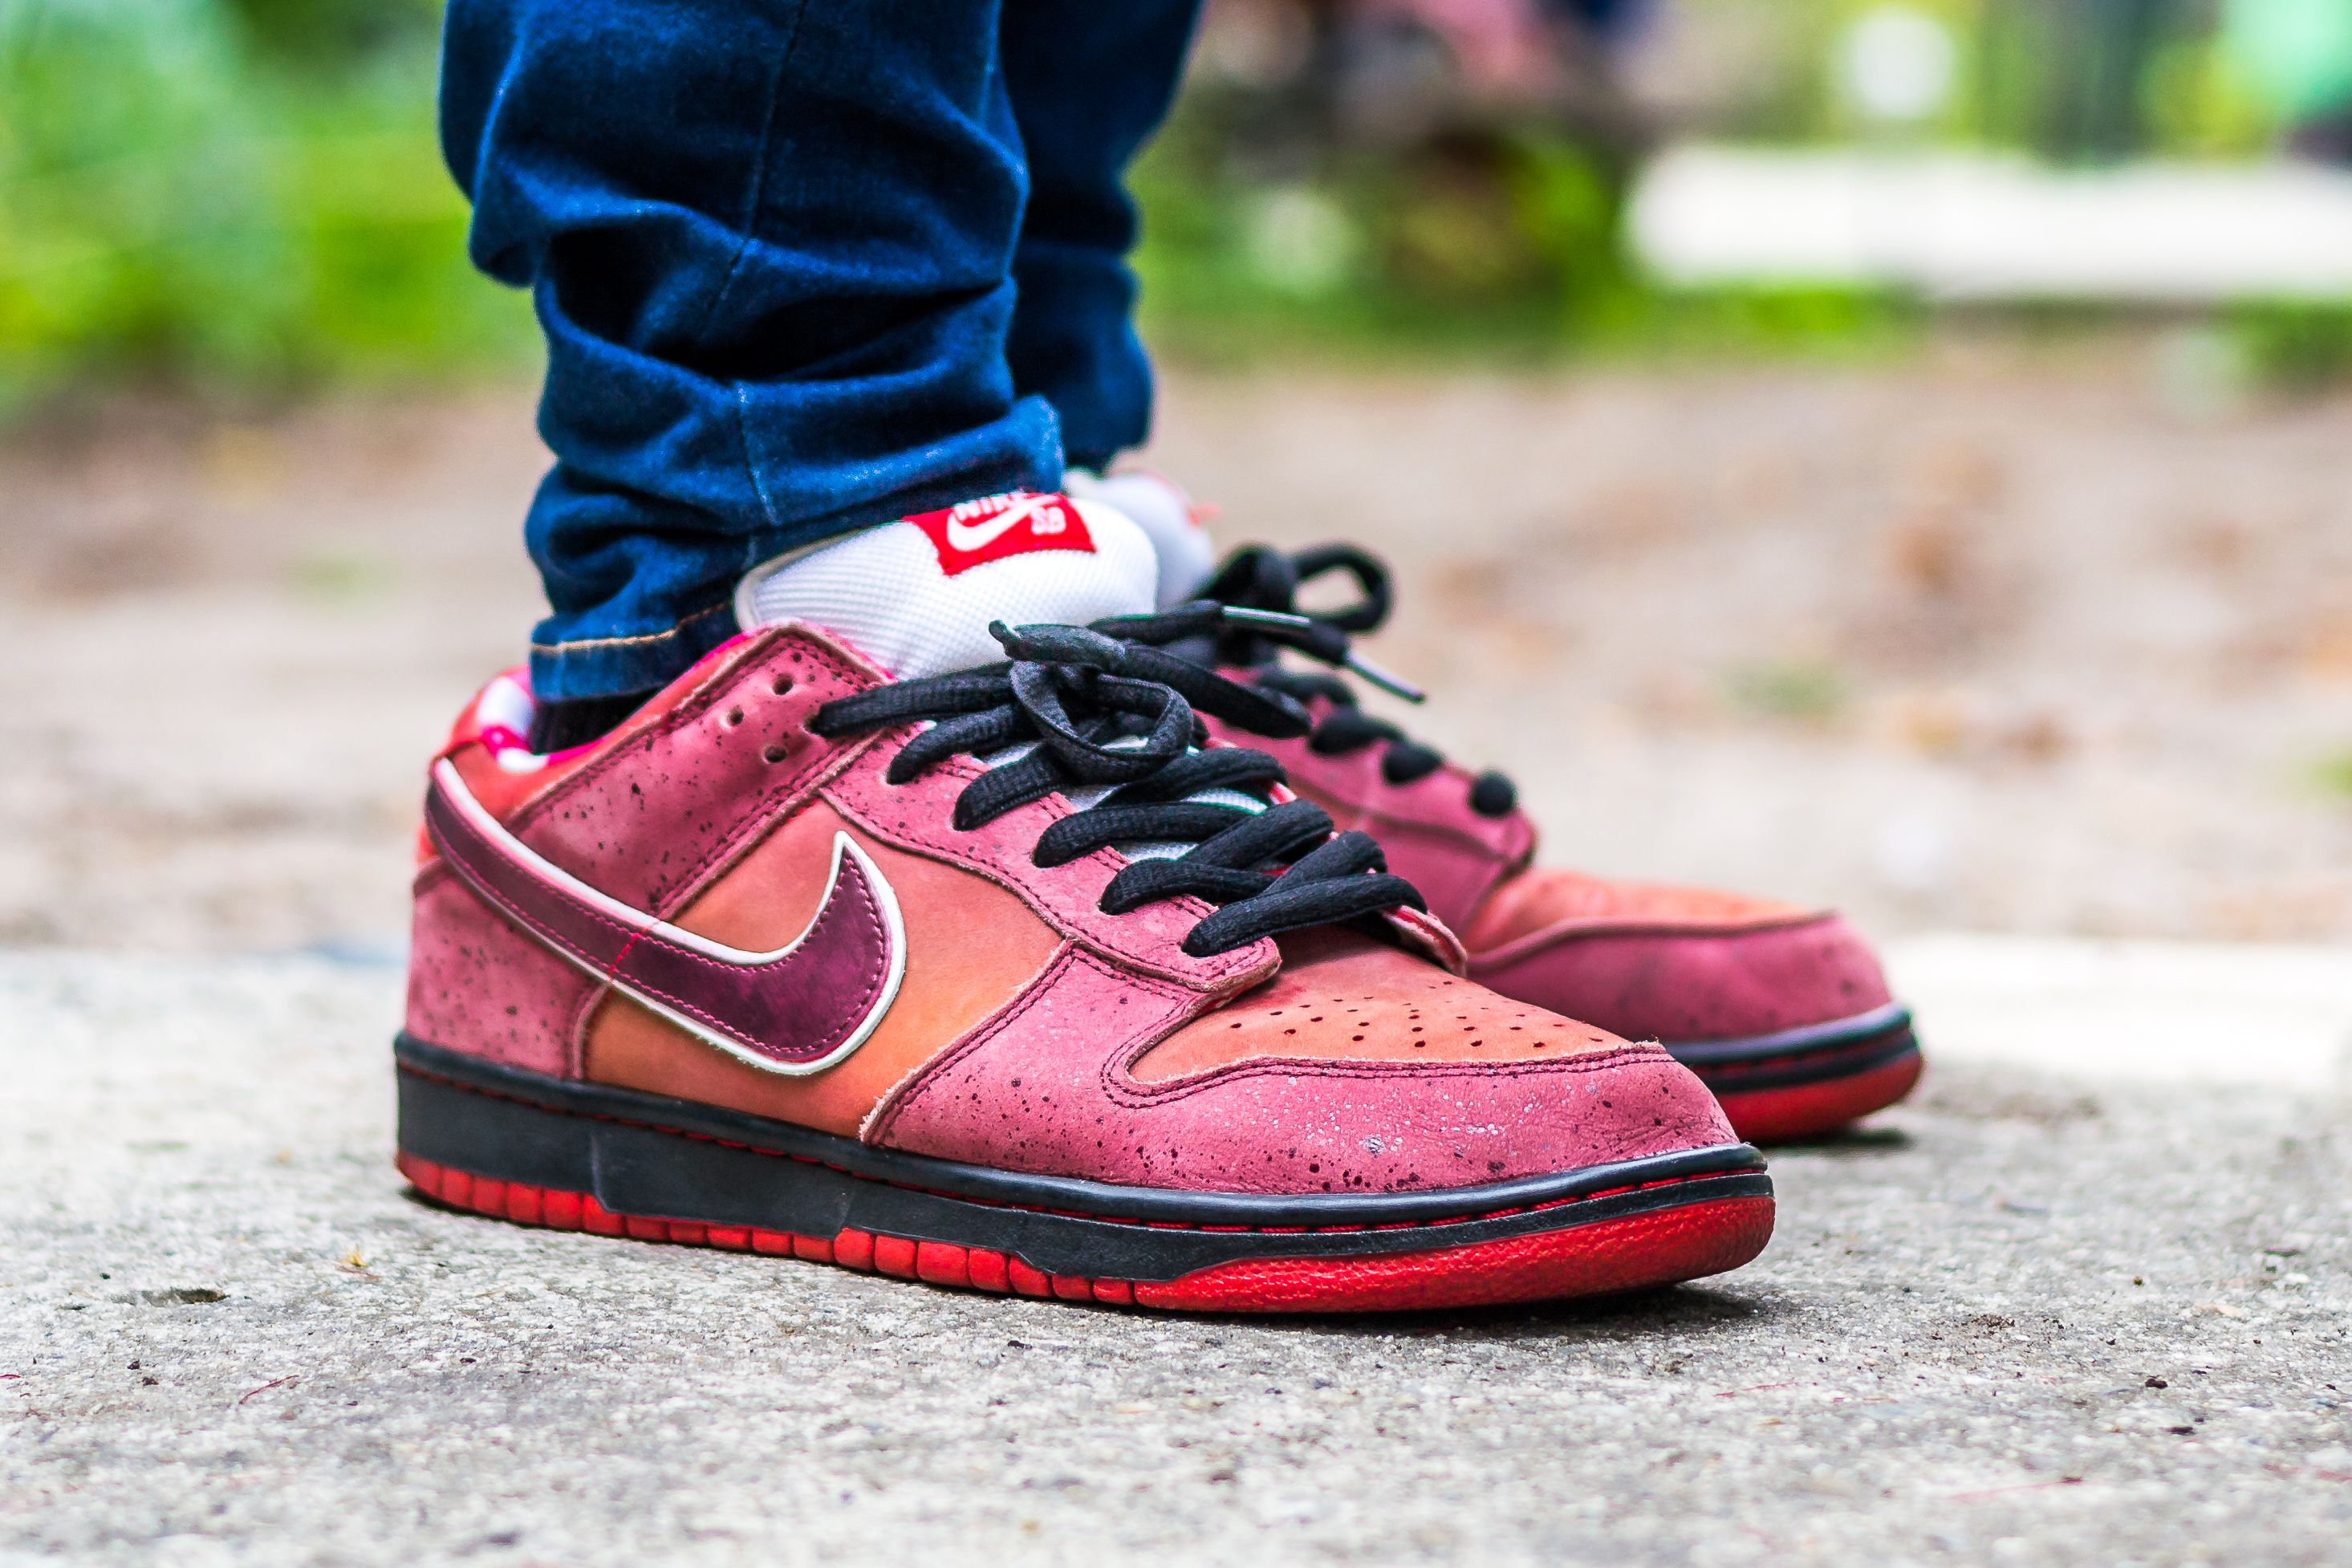 3ef8b93f4c4e2b Click to see my video review of the Nike Dunk Low SB Red Lobster and find  out where to buy a pair yourself